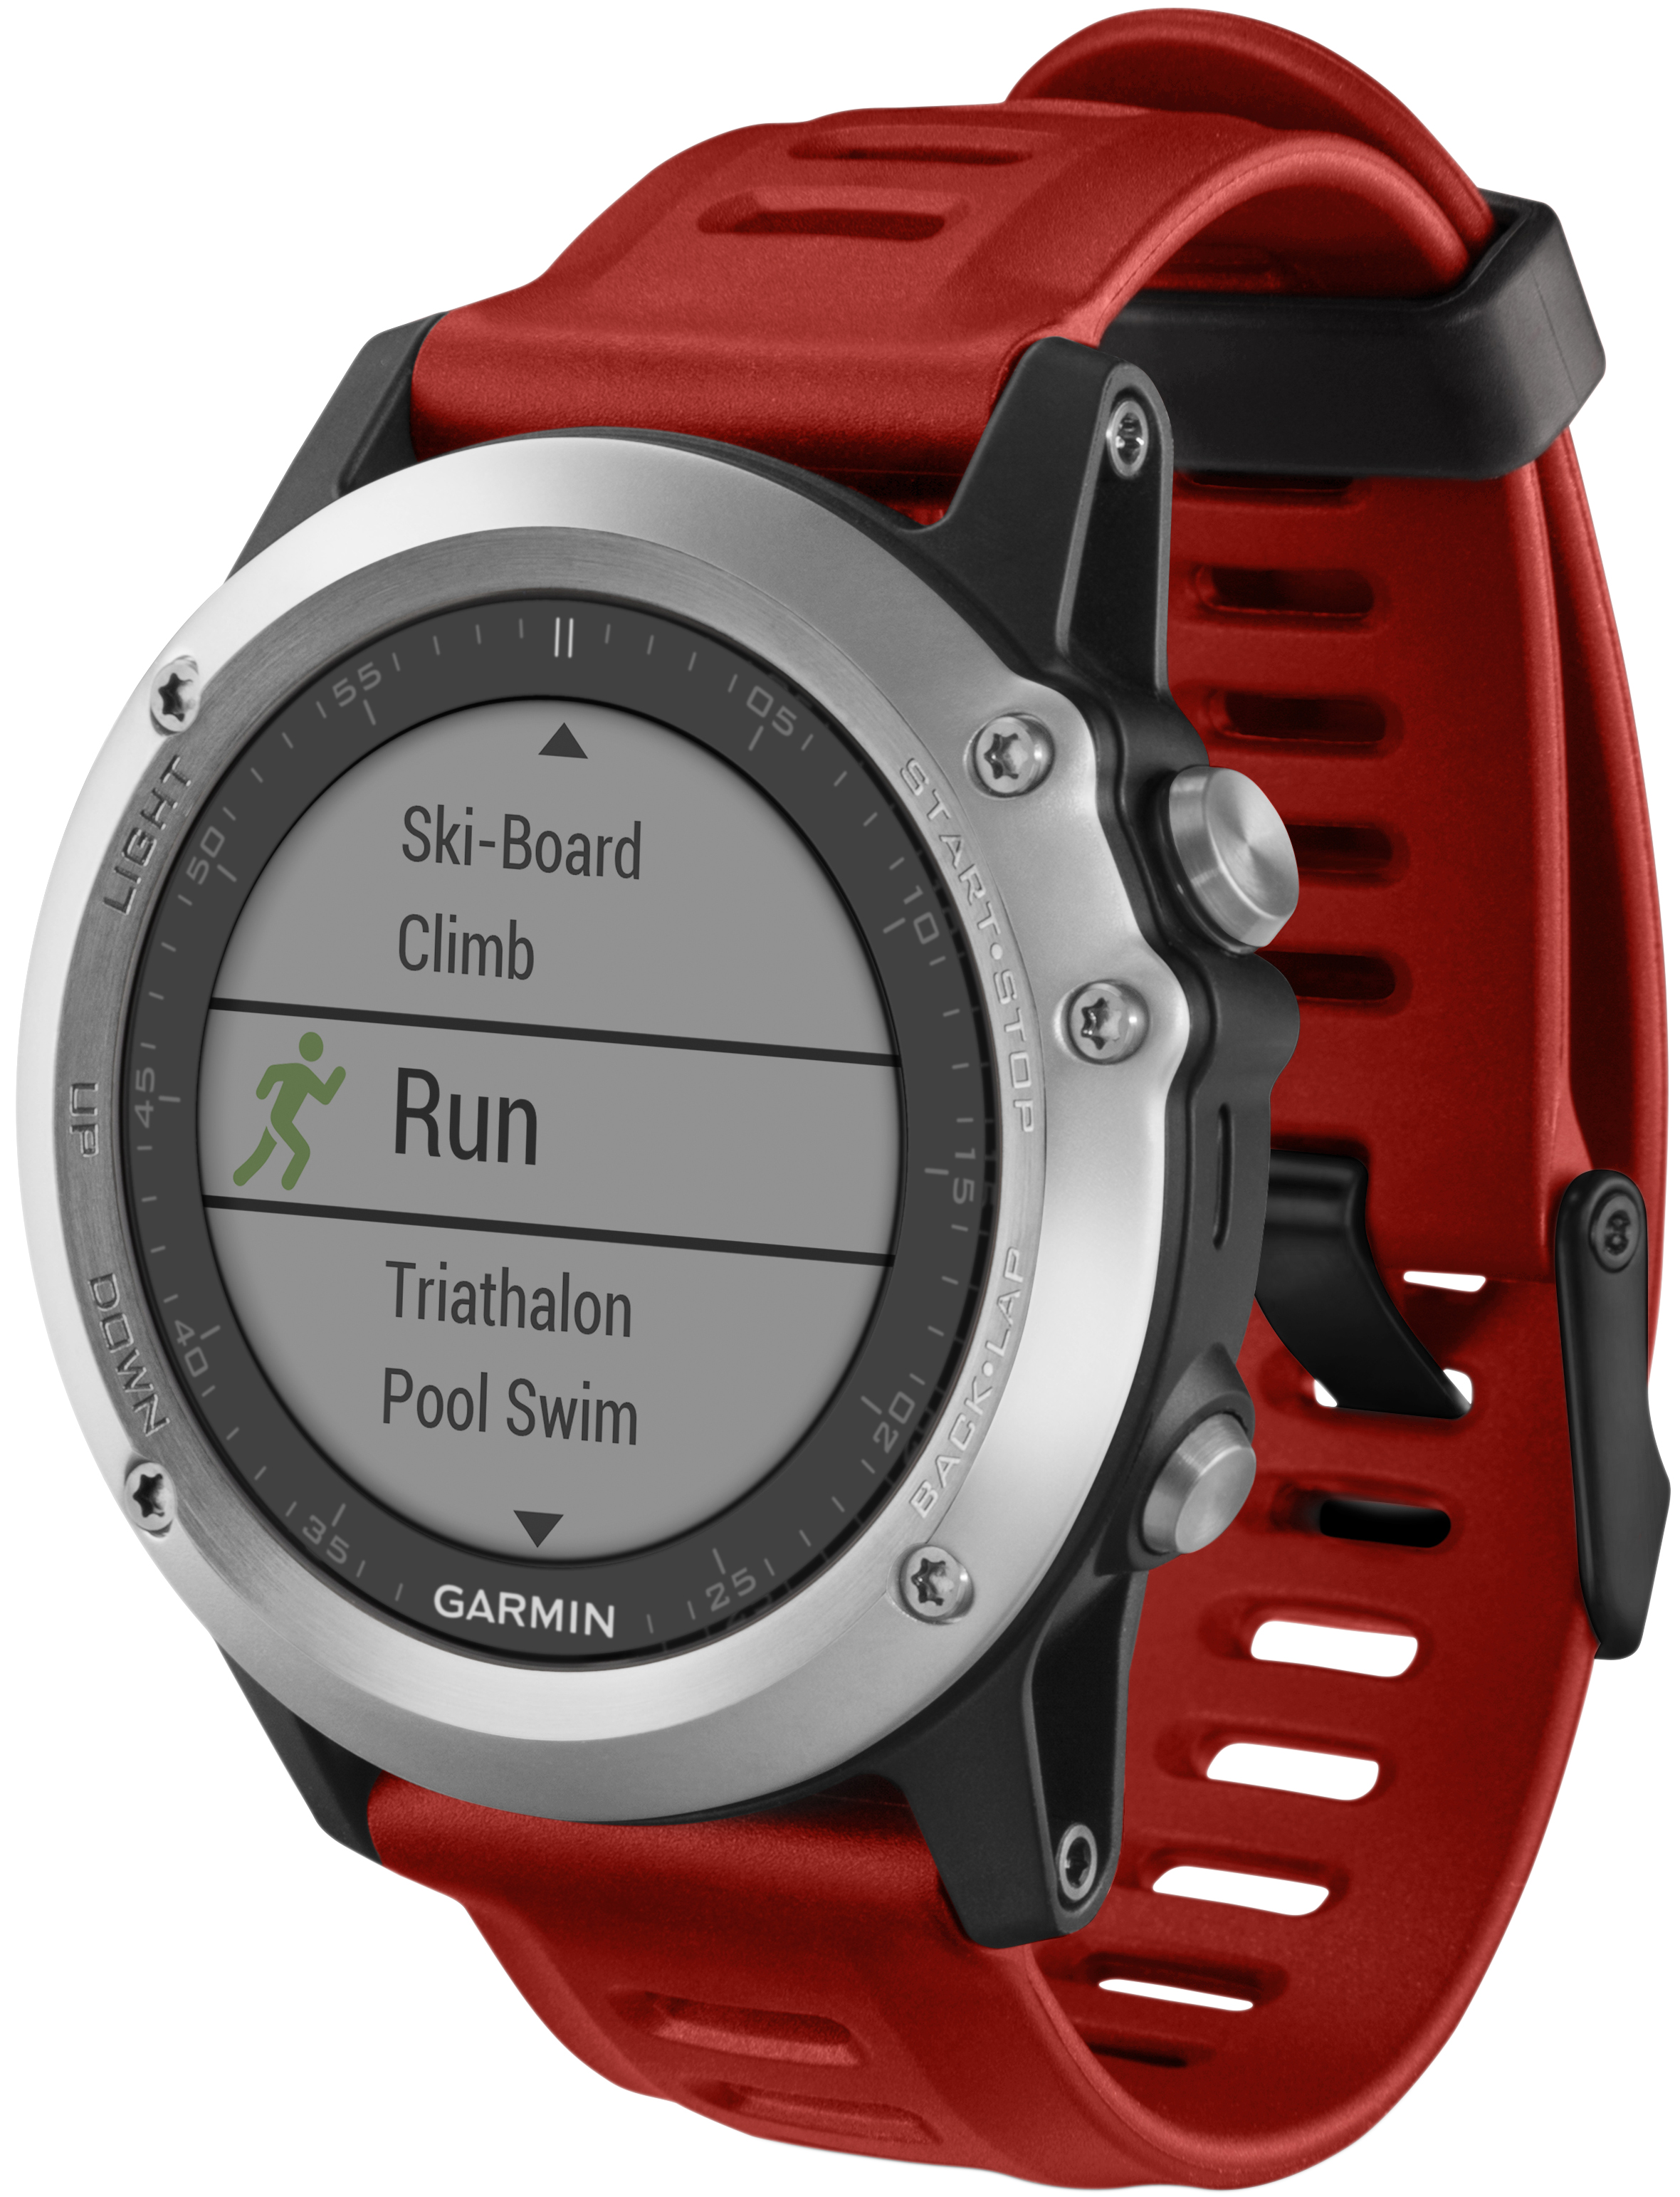 watch gps watches reviews best golf